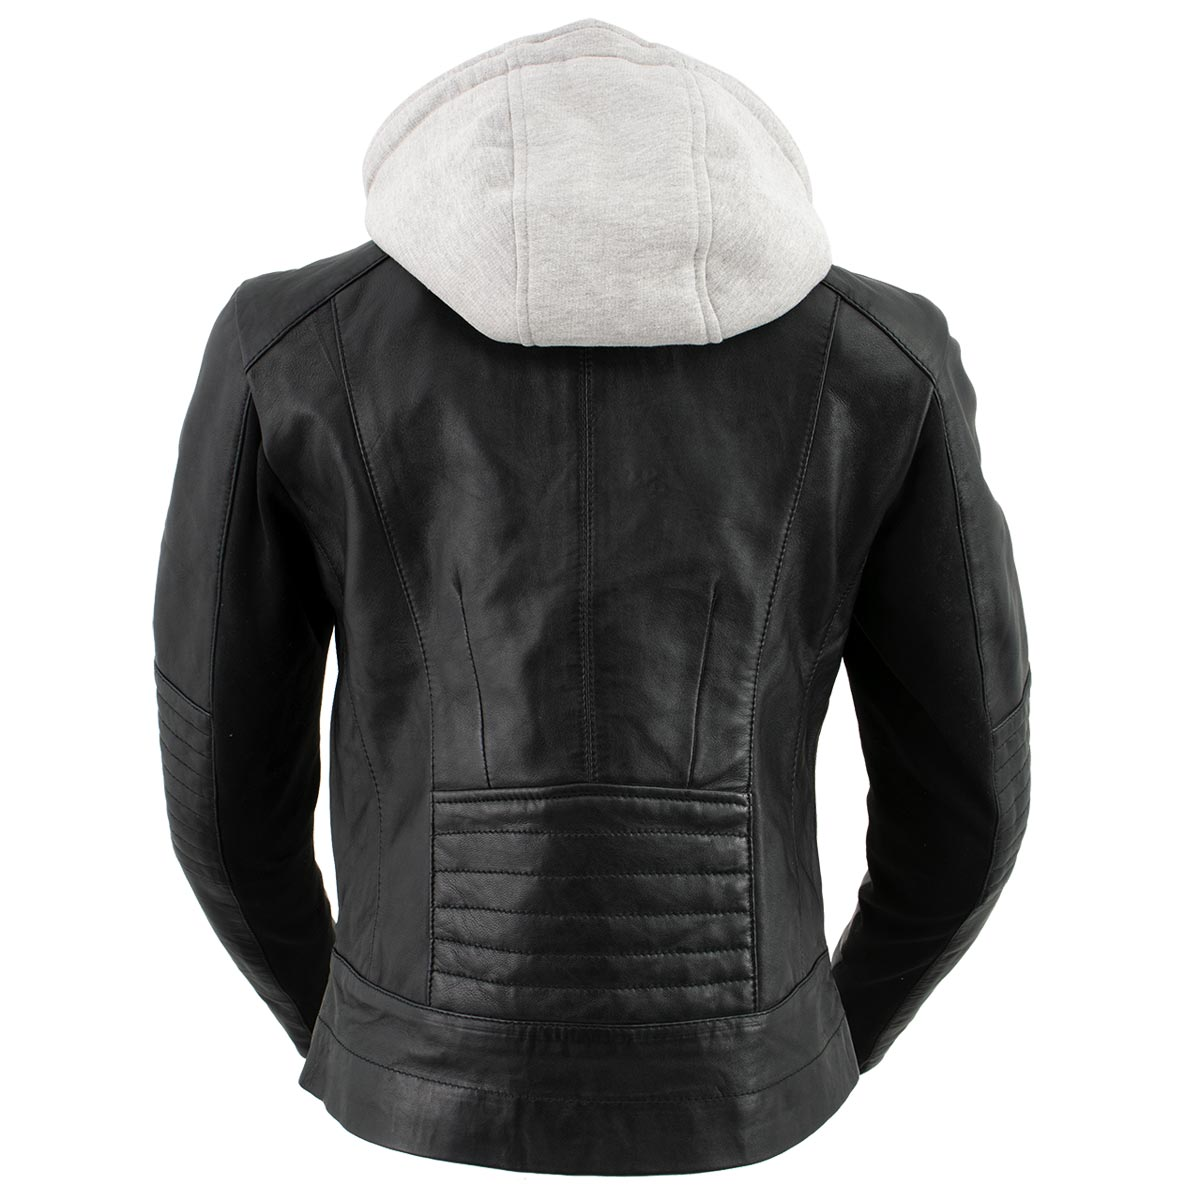 Xelement B91044 Ladies 'Stitch' Black Racer Style Scuba Jacket with